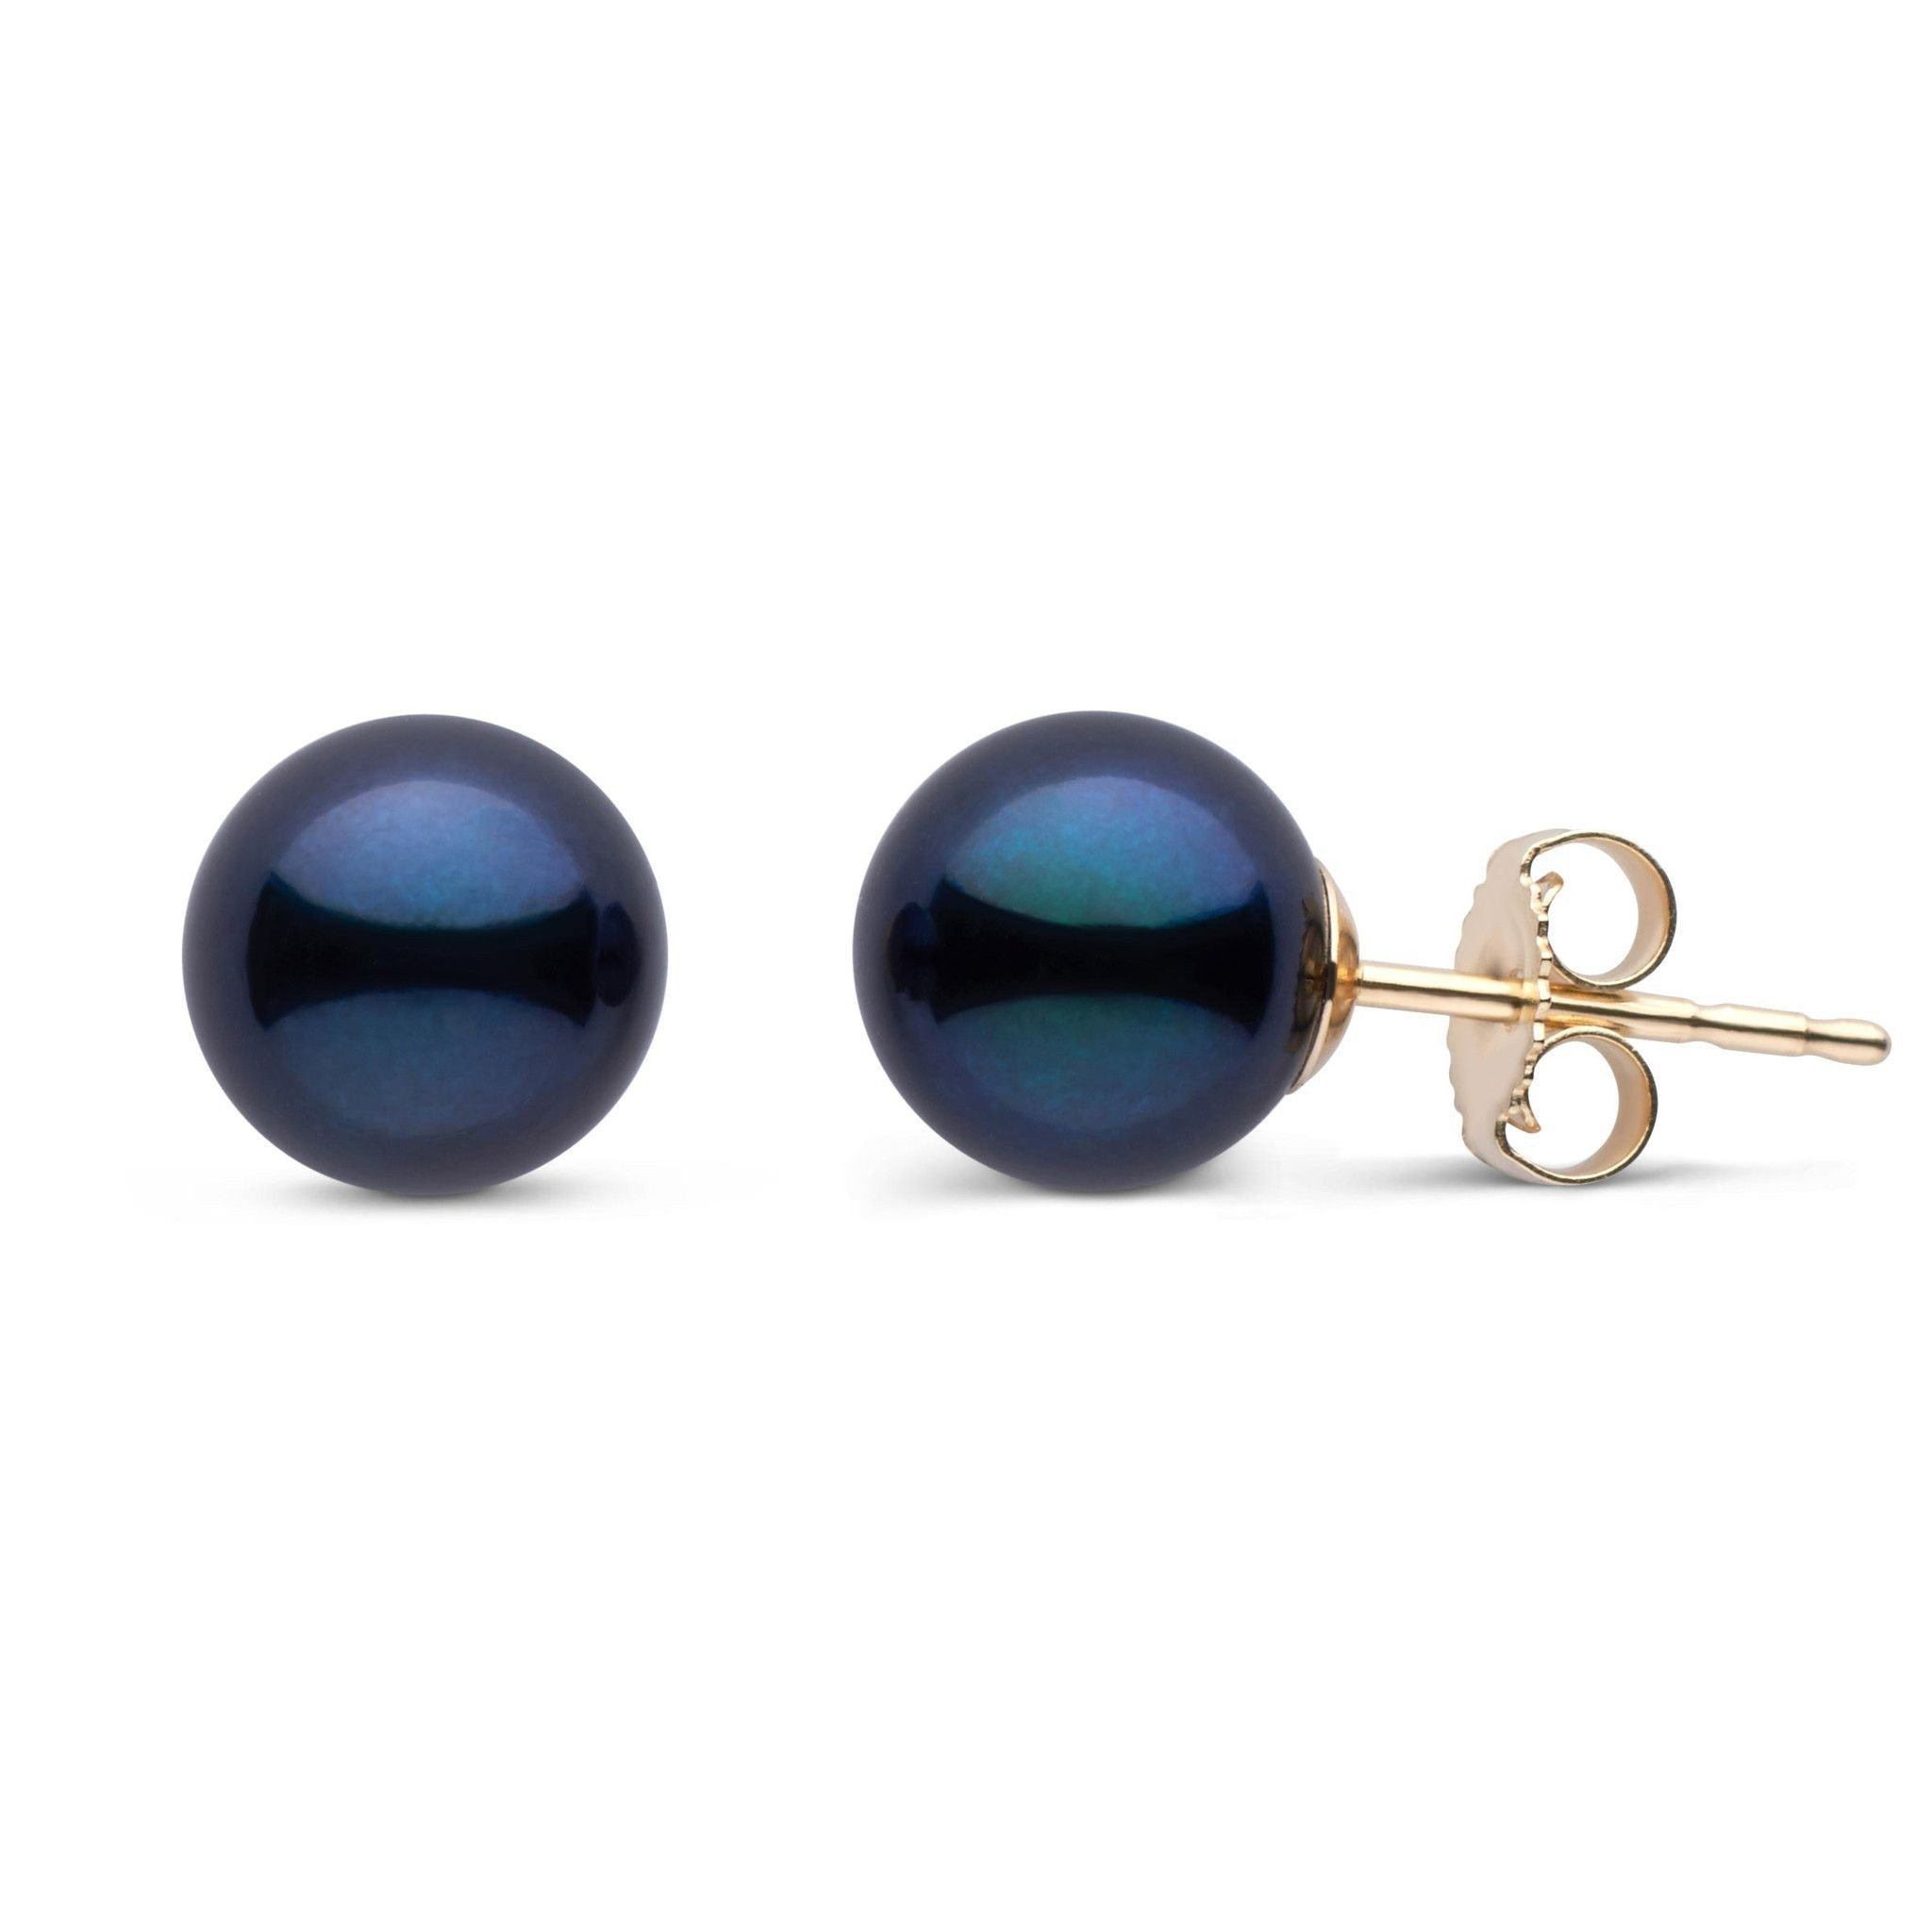 7.5-8.0 mm AA+ Black Akoya Pearl Stud Earrings